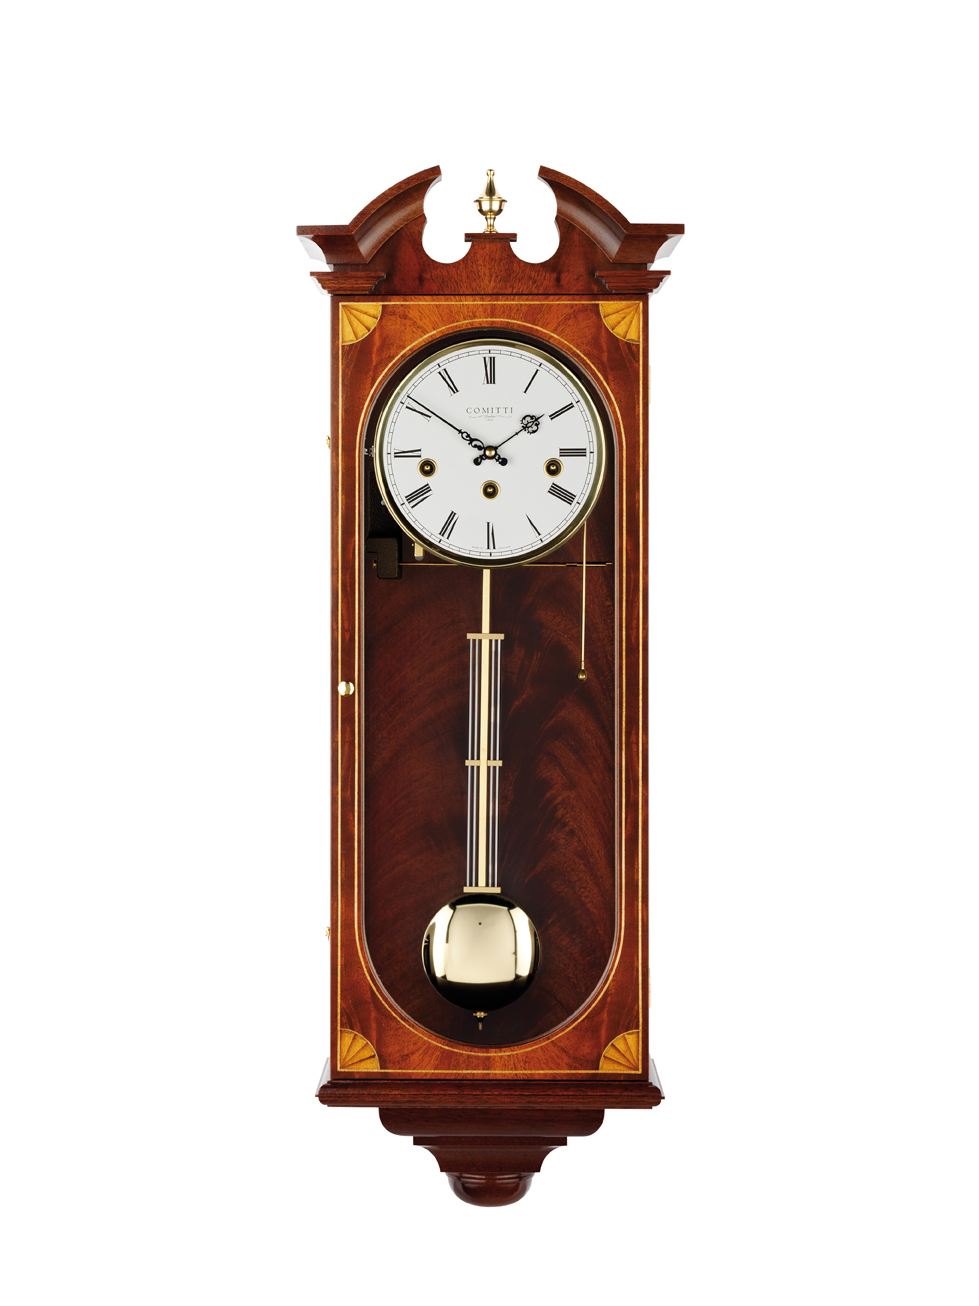 Mahogany 8 Day Comitti Inlaid Westminster Chime Wall